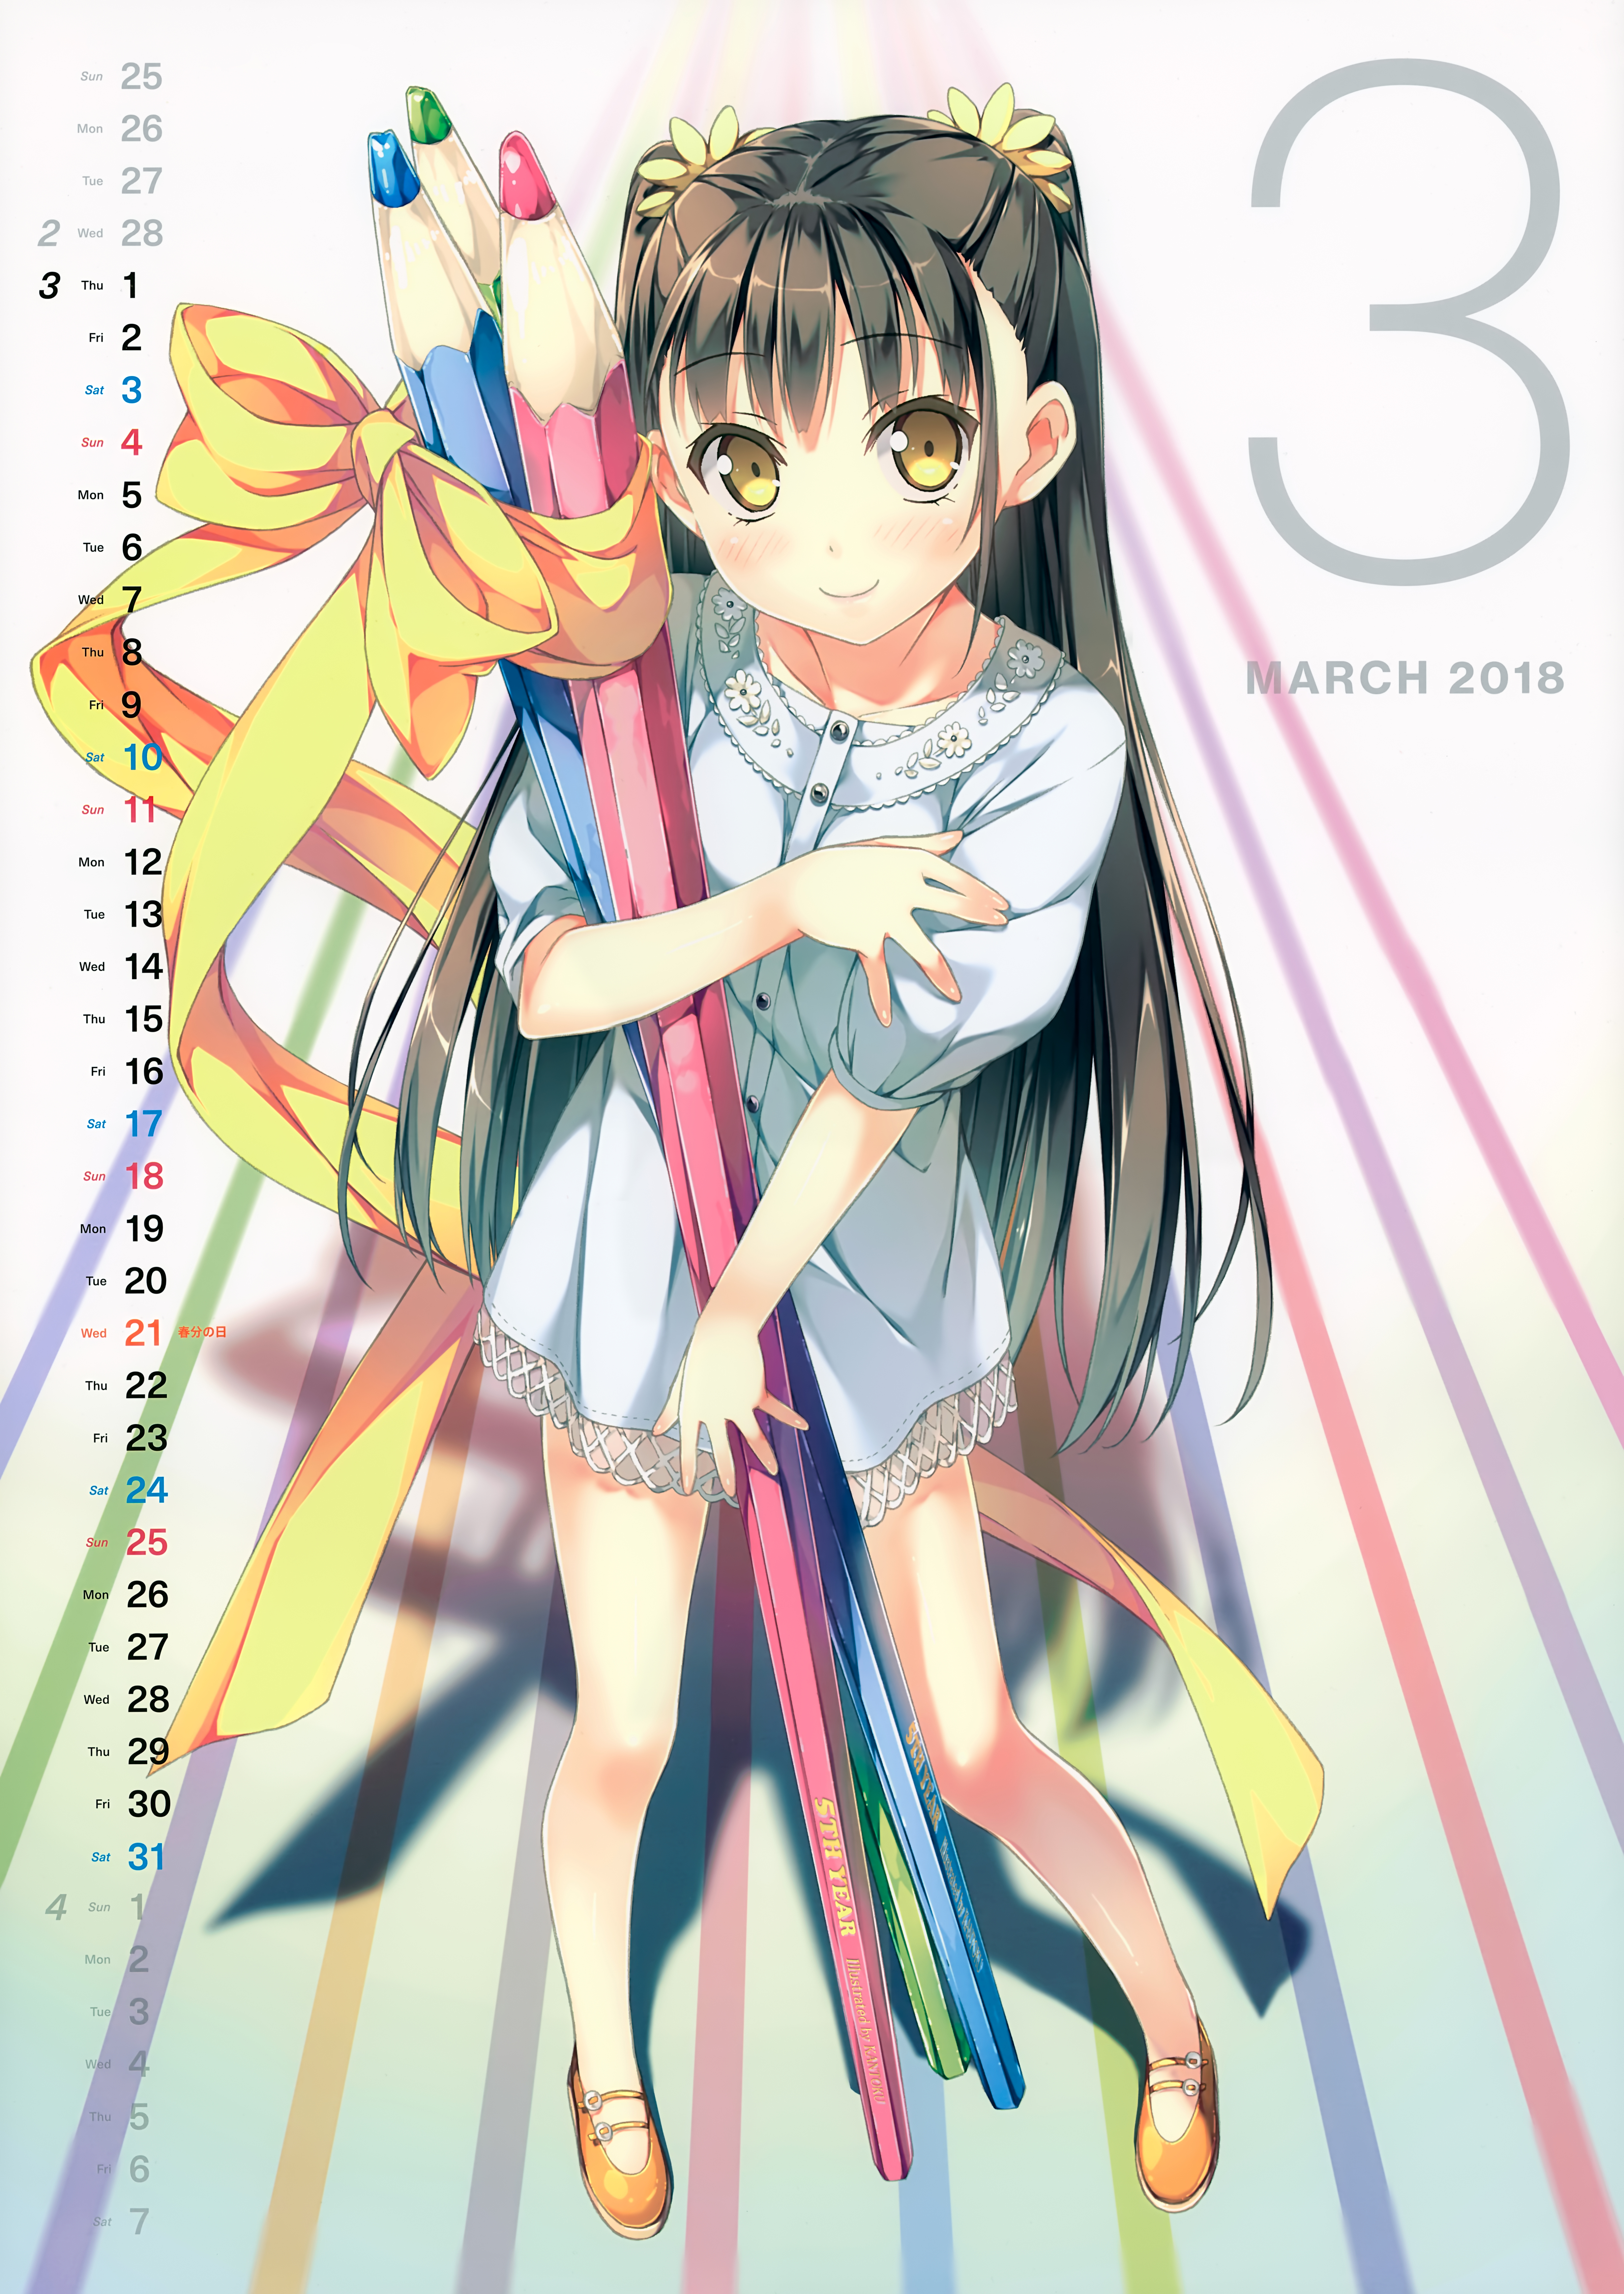 Kantoku calendar 2018 zerochan anime image board - Anime images download ...